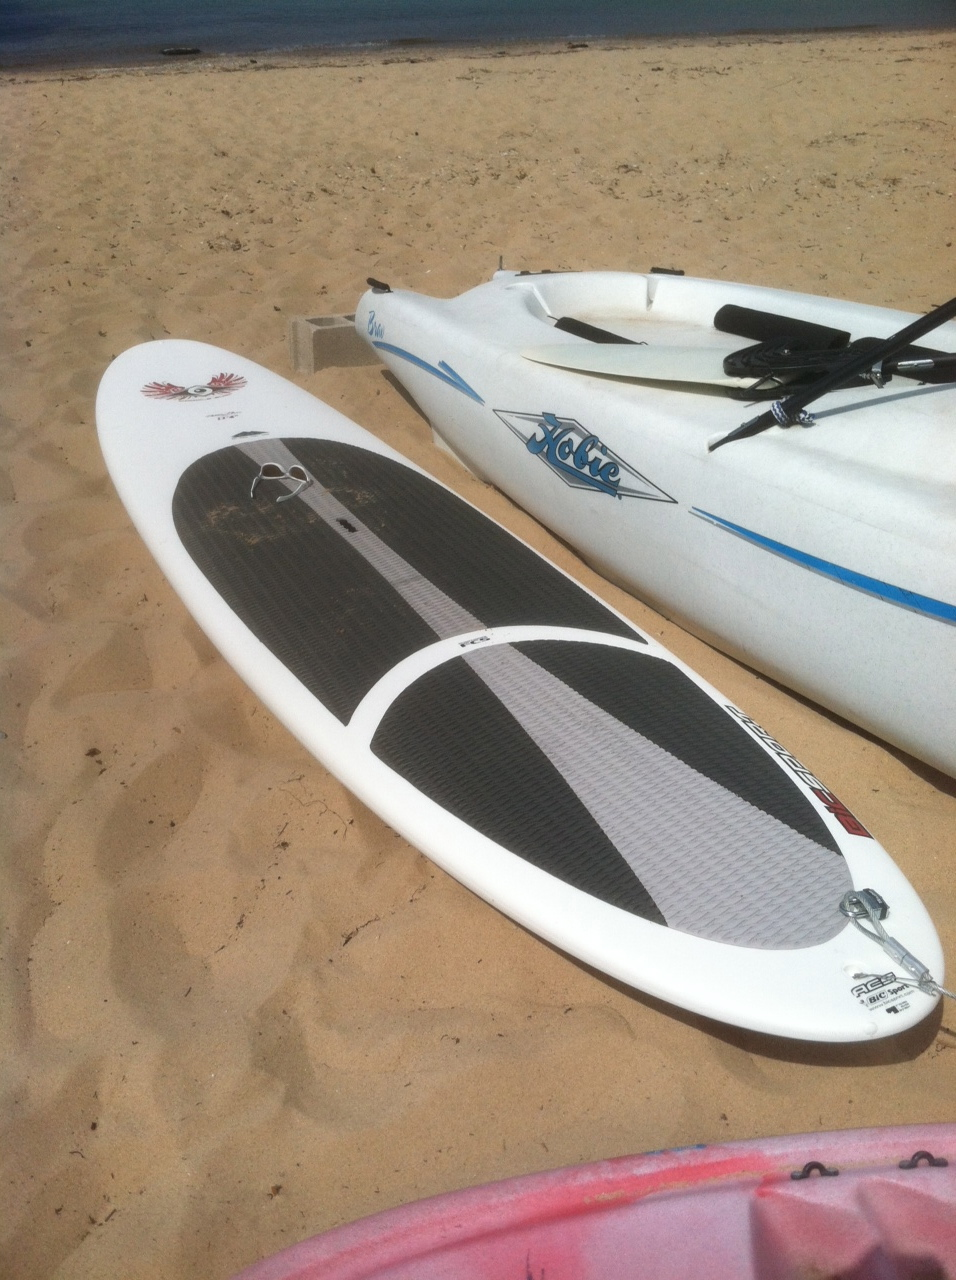 Stand Up Paddle Board in the sand on the beach